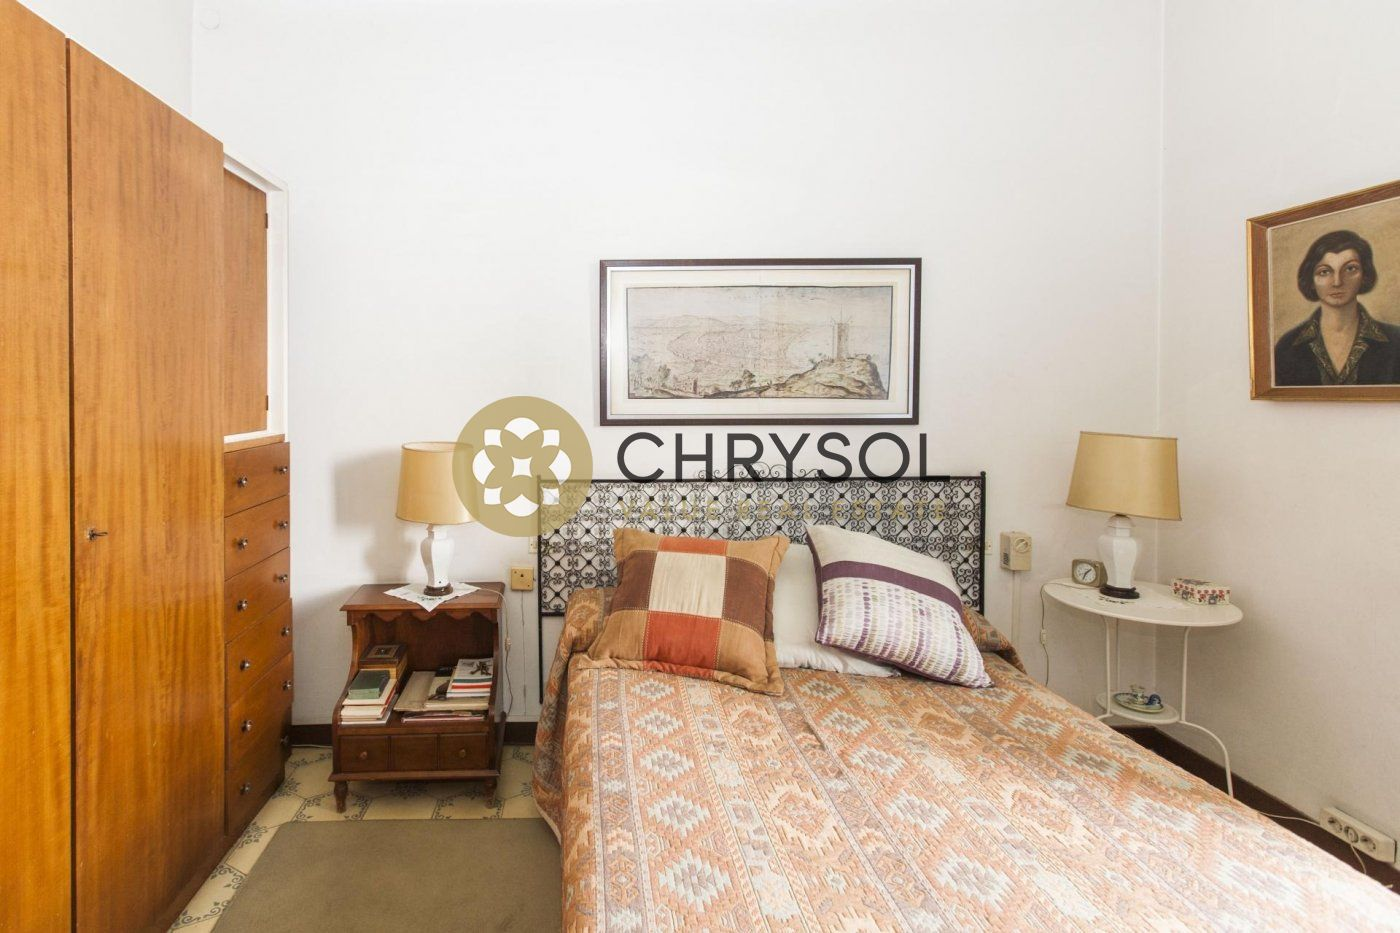 Photogallery - 18 - Chrysol Value